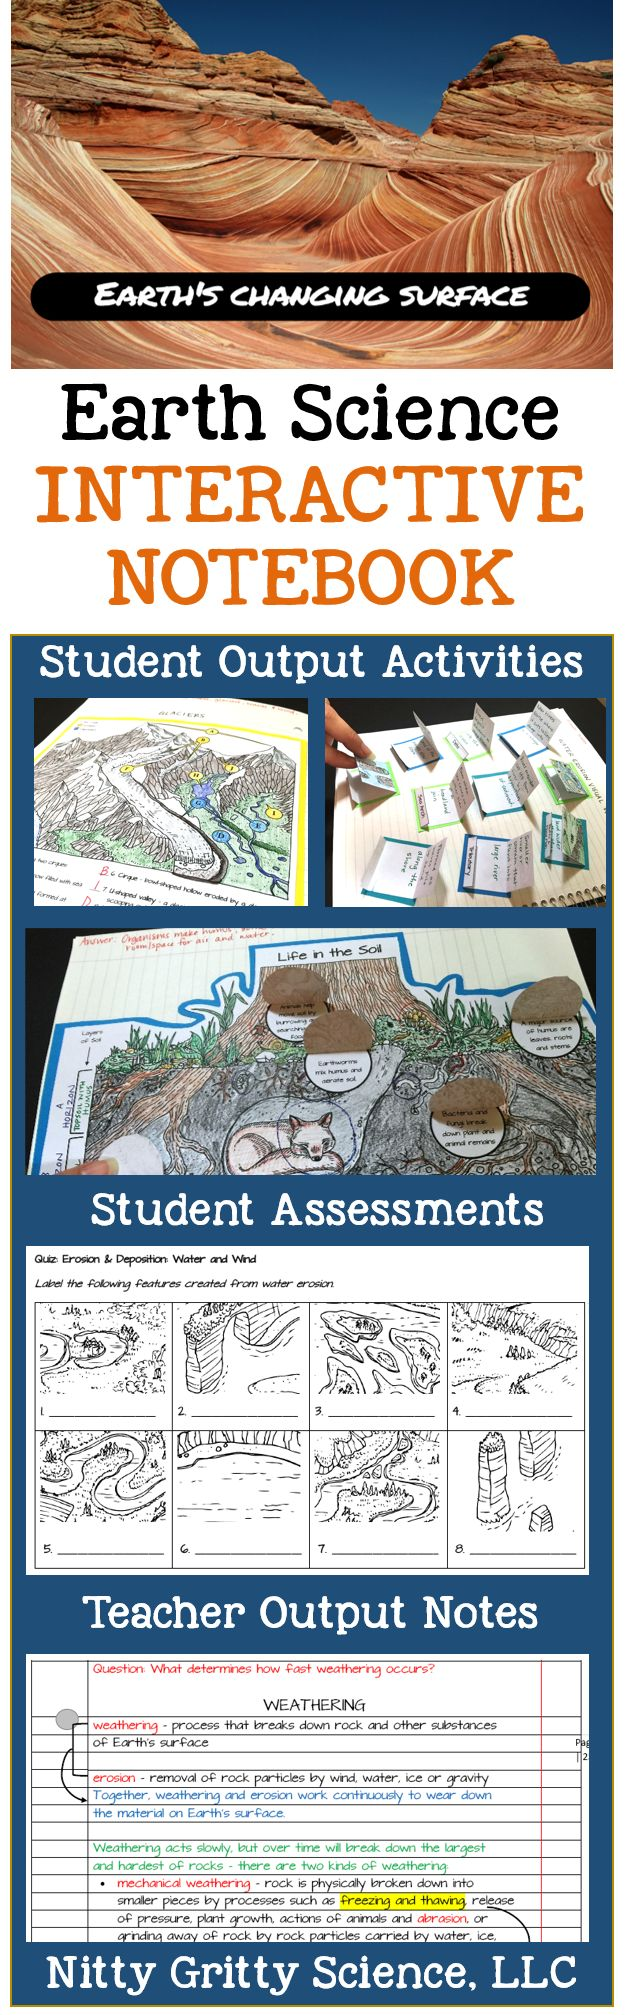 Science Interactive Notebooks plus mini-quizzes and Teacher Notes for Earth's Changing Surface {erosion, deposition, glaciers, water, mass movement}